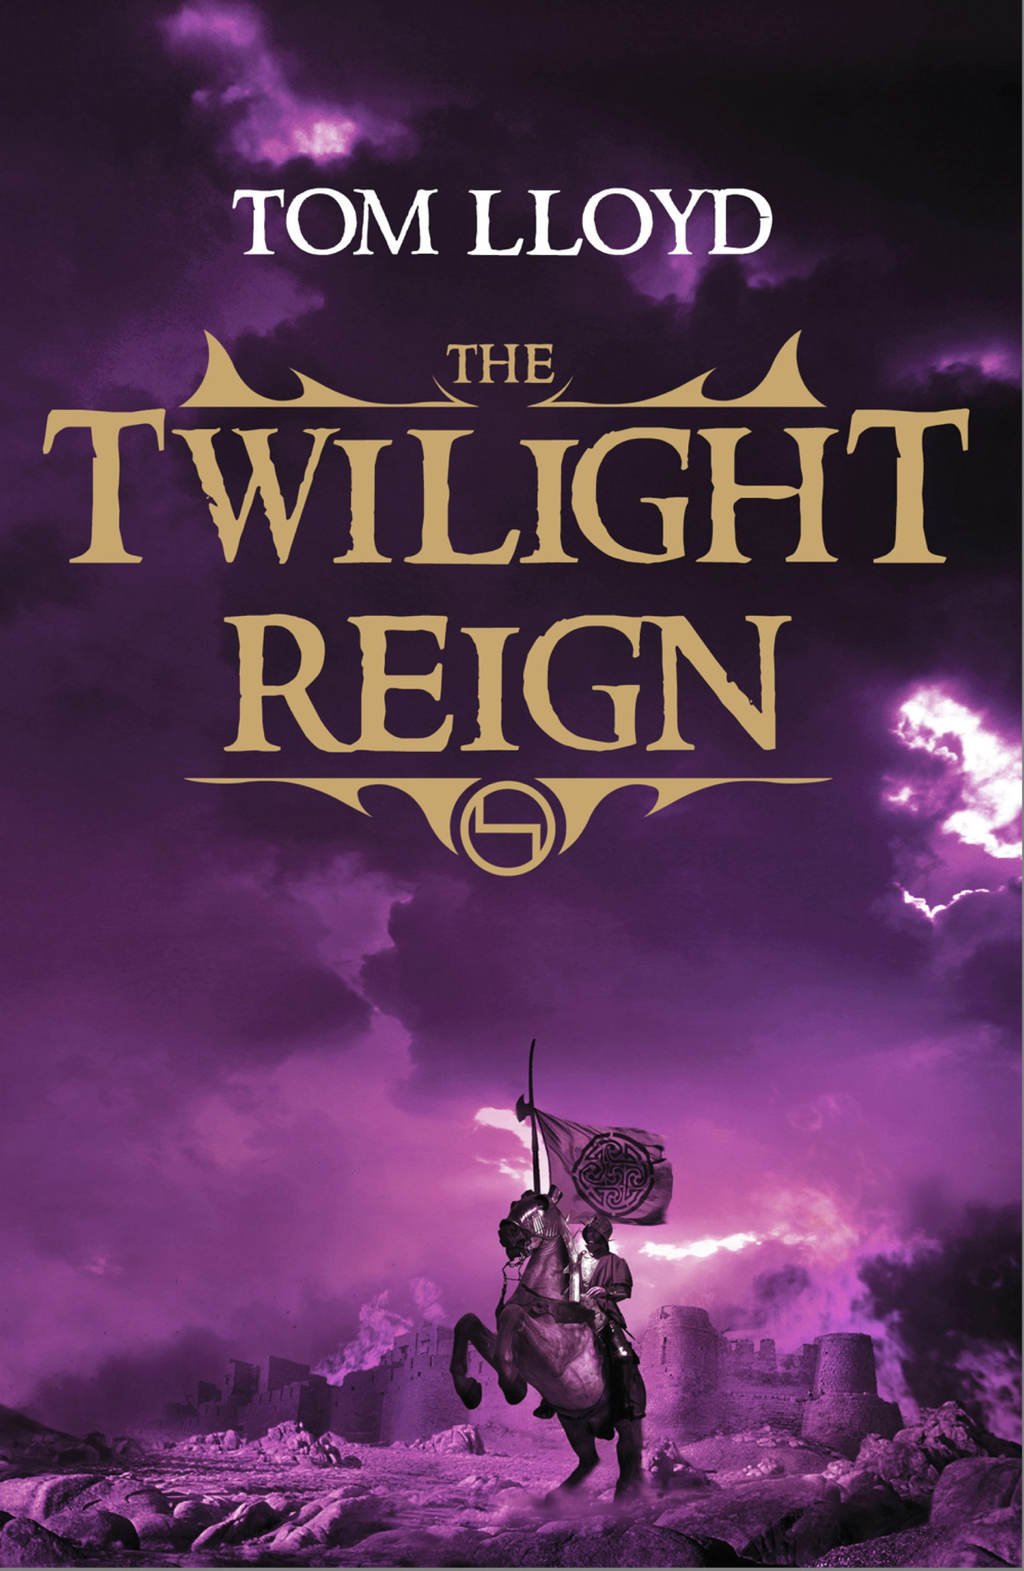 The Twilight Reign Three Short Stories and an Extract from the Bestselling Fantasy Series